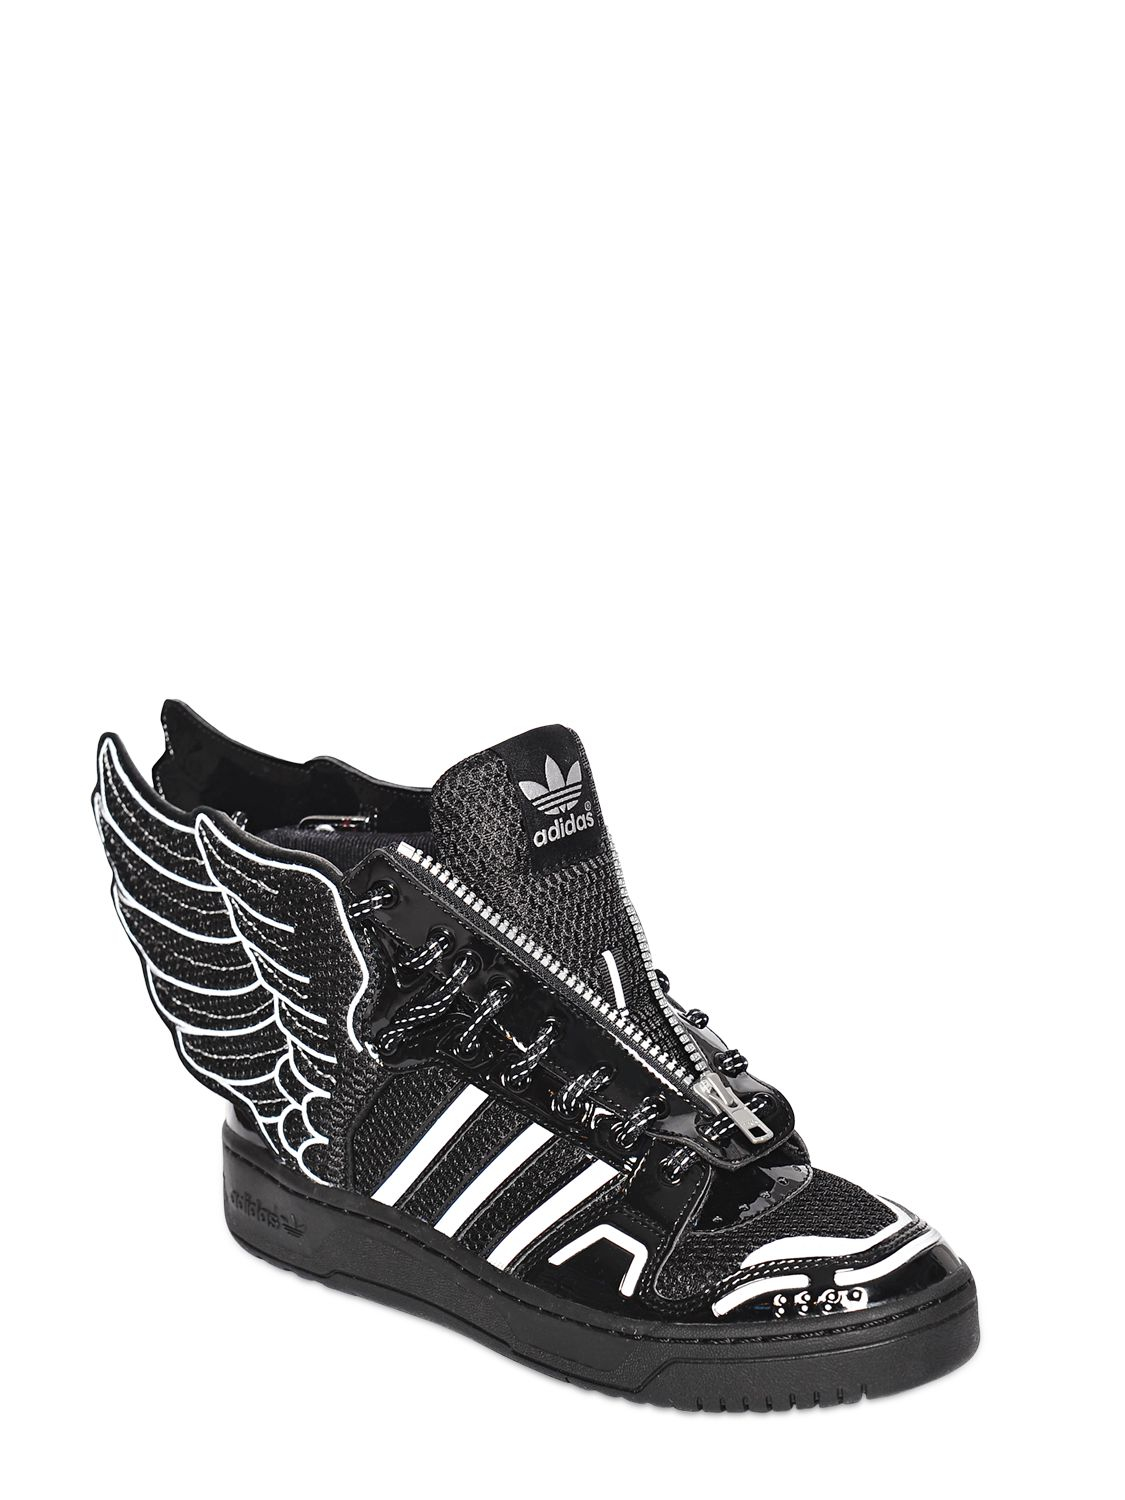 adidas shoes high tops wings. adidas shoes high tops wings e